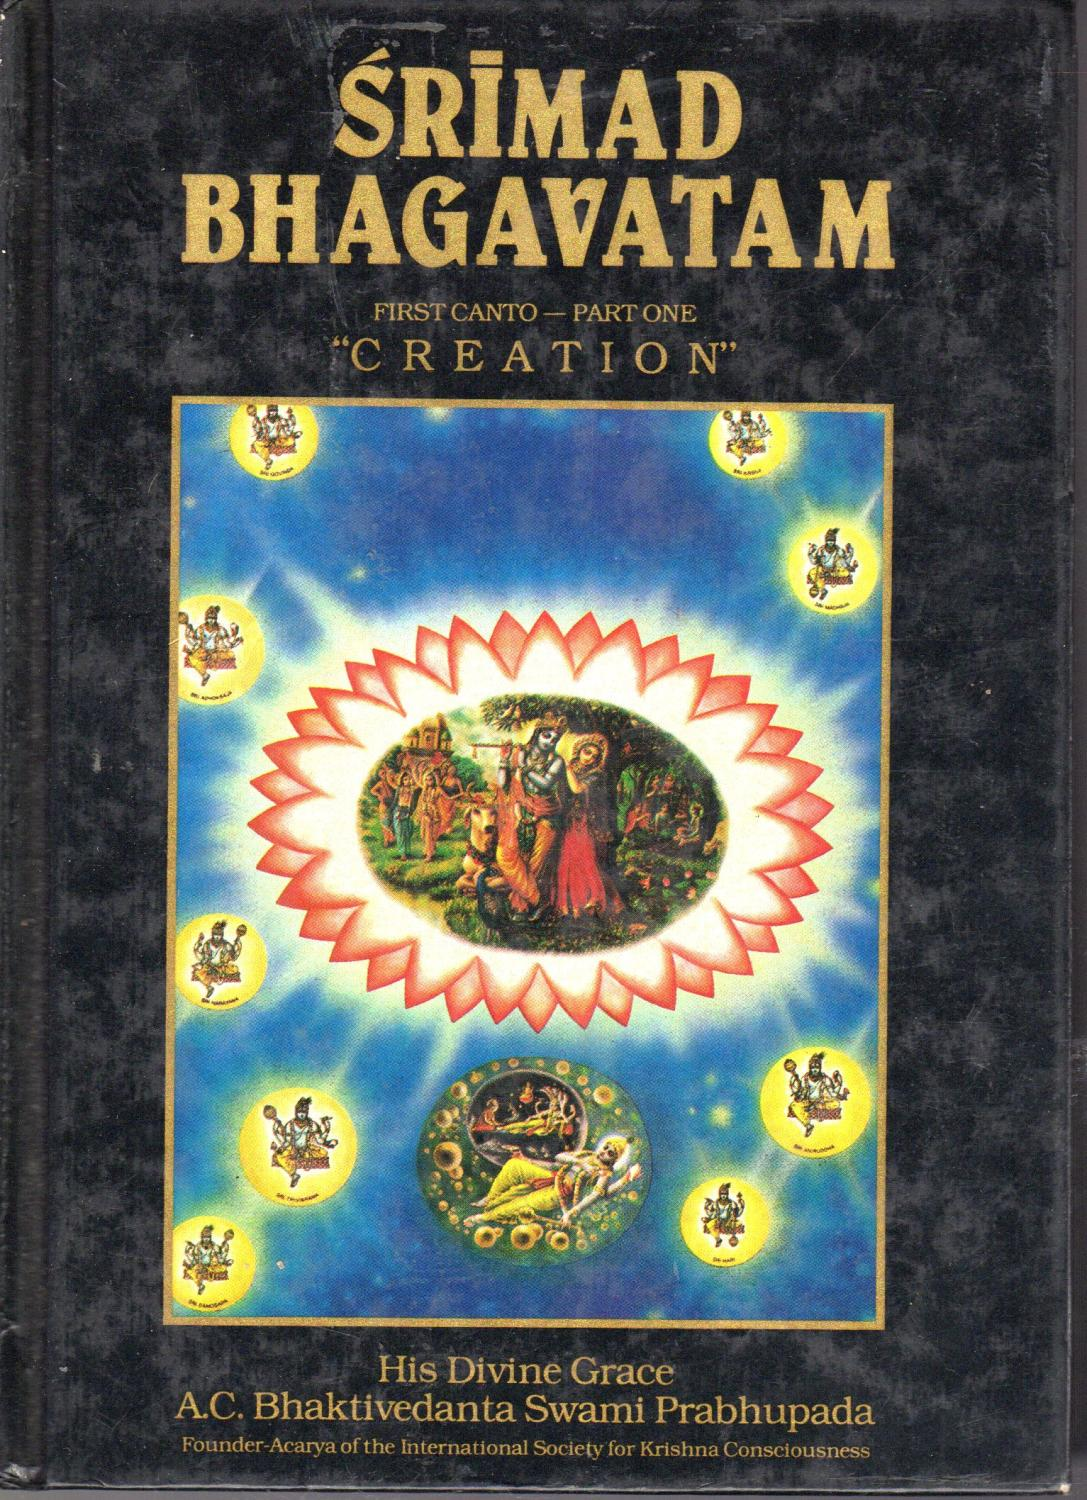 Srimad Bhagavatam: First Canto Part 1 (One) Chapters 1-7